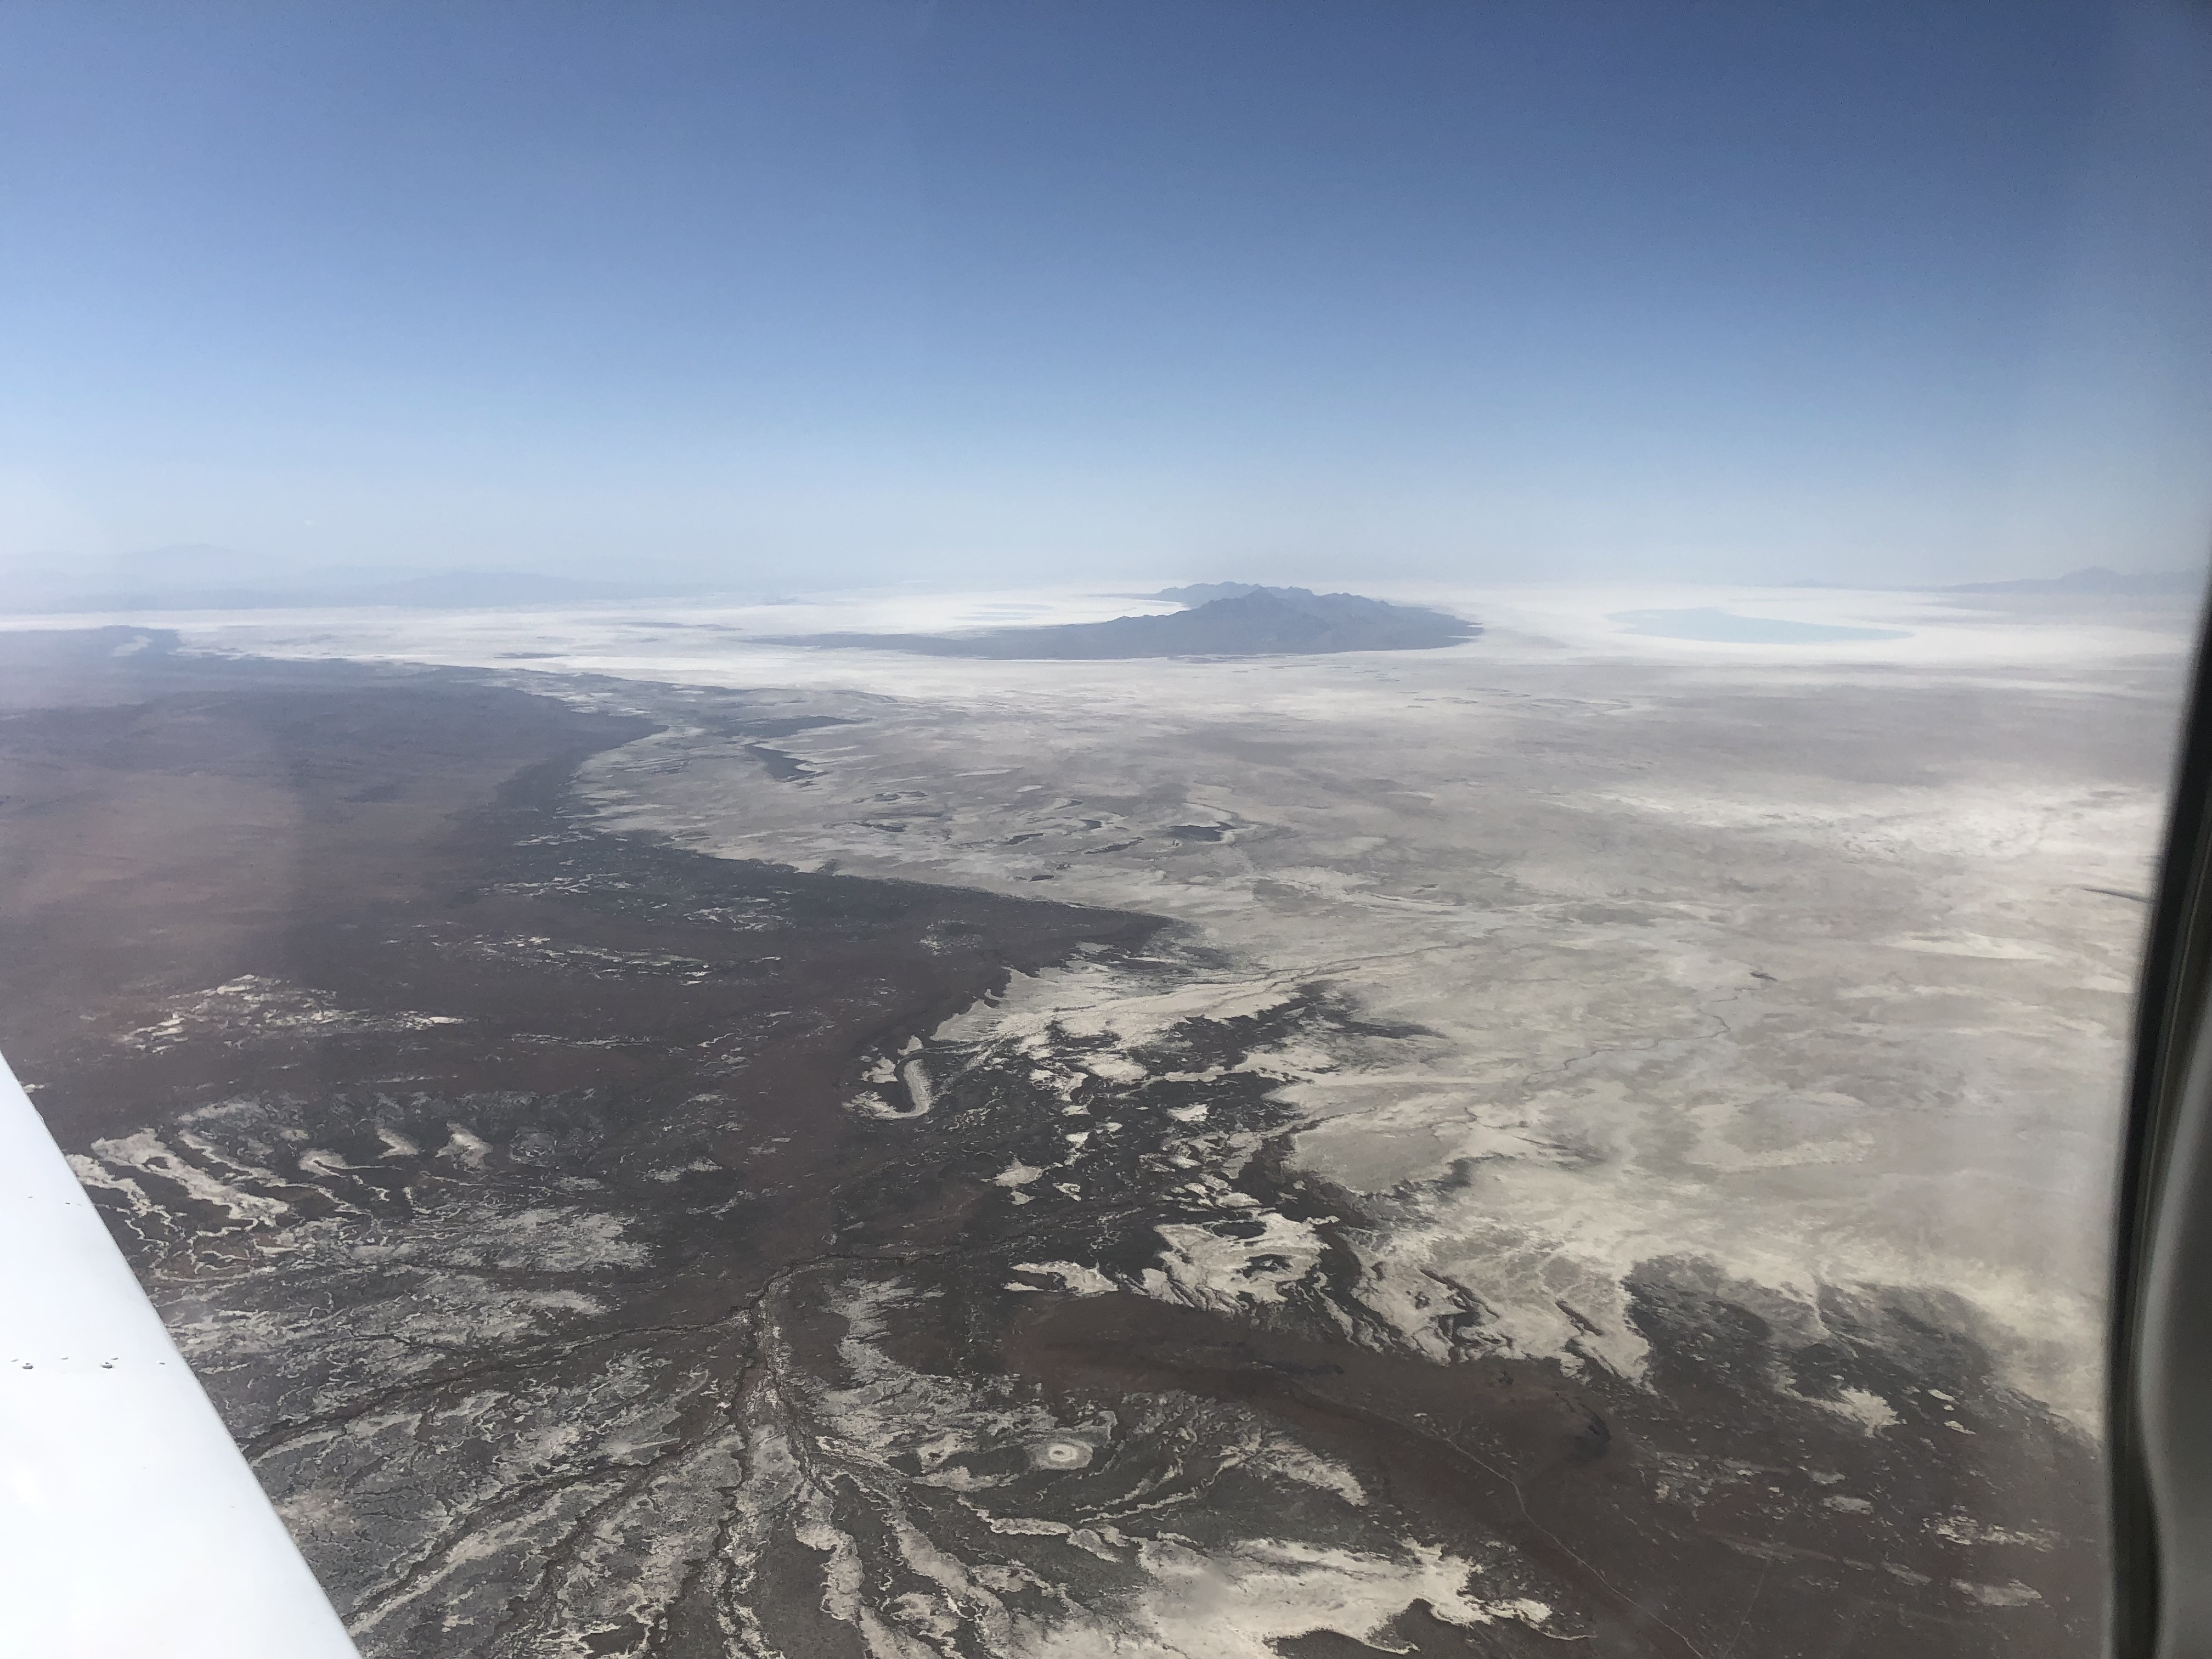 Mountains rising out of the Great Salt Lake of Utah